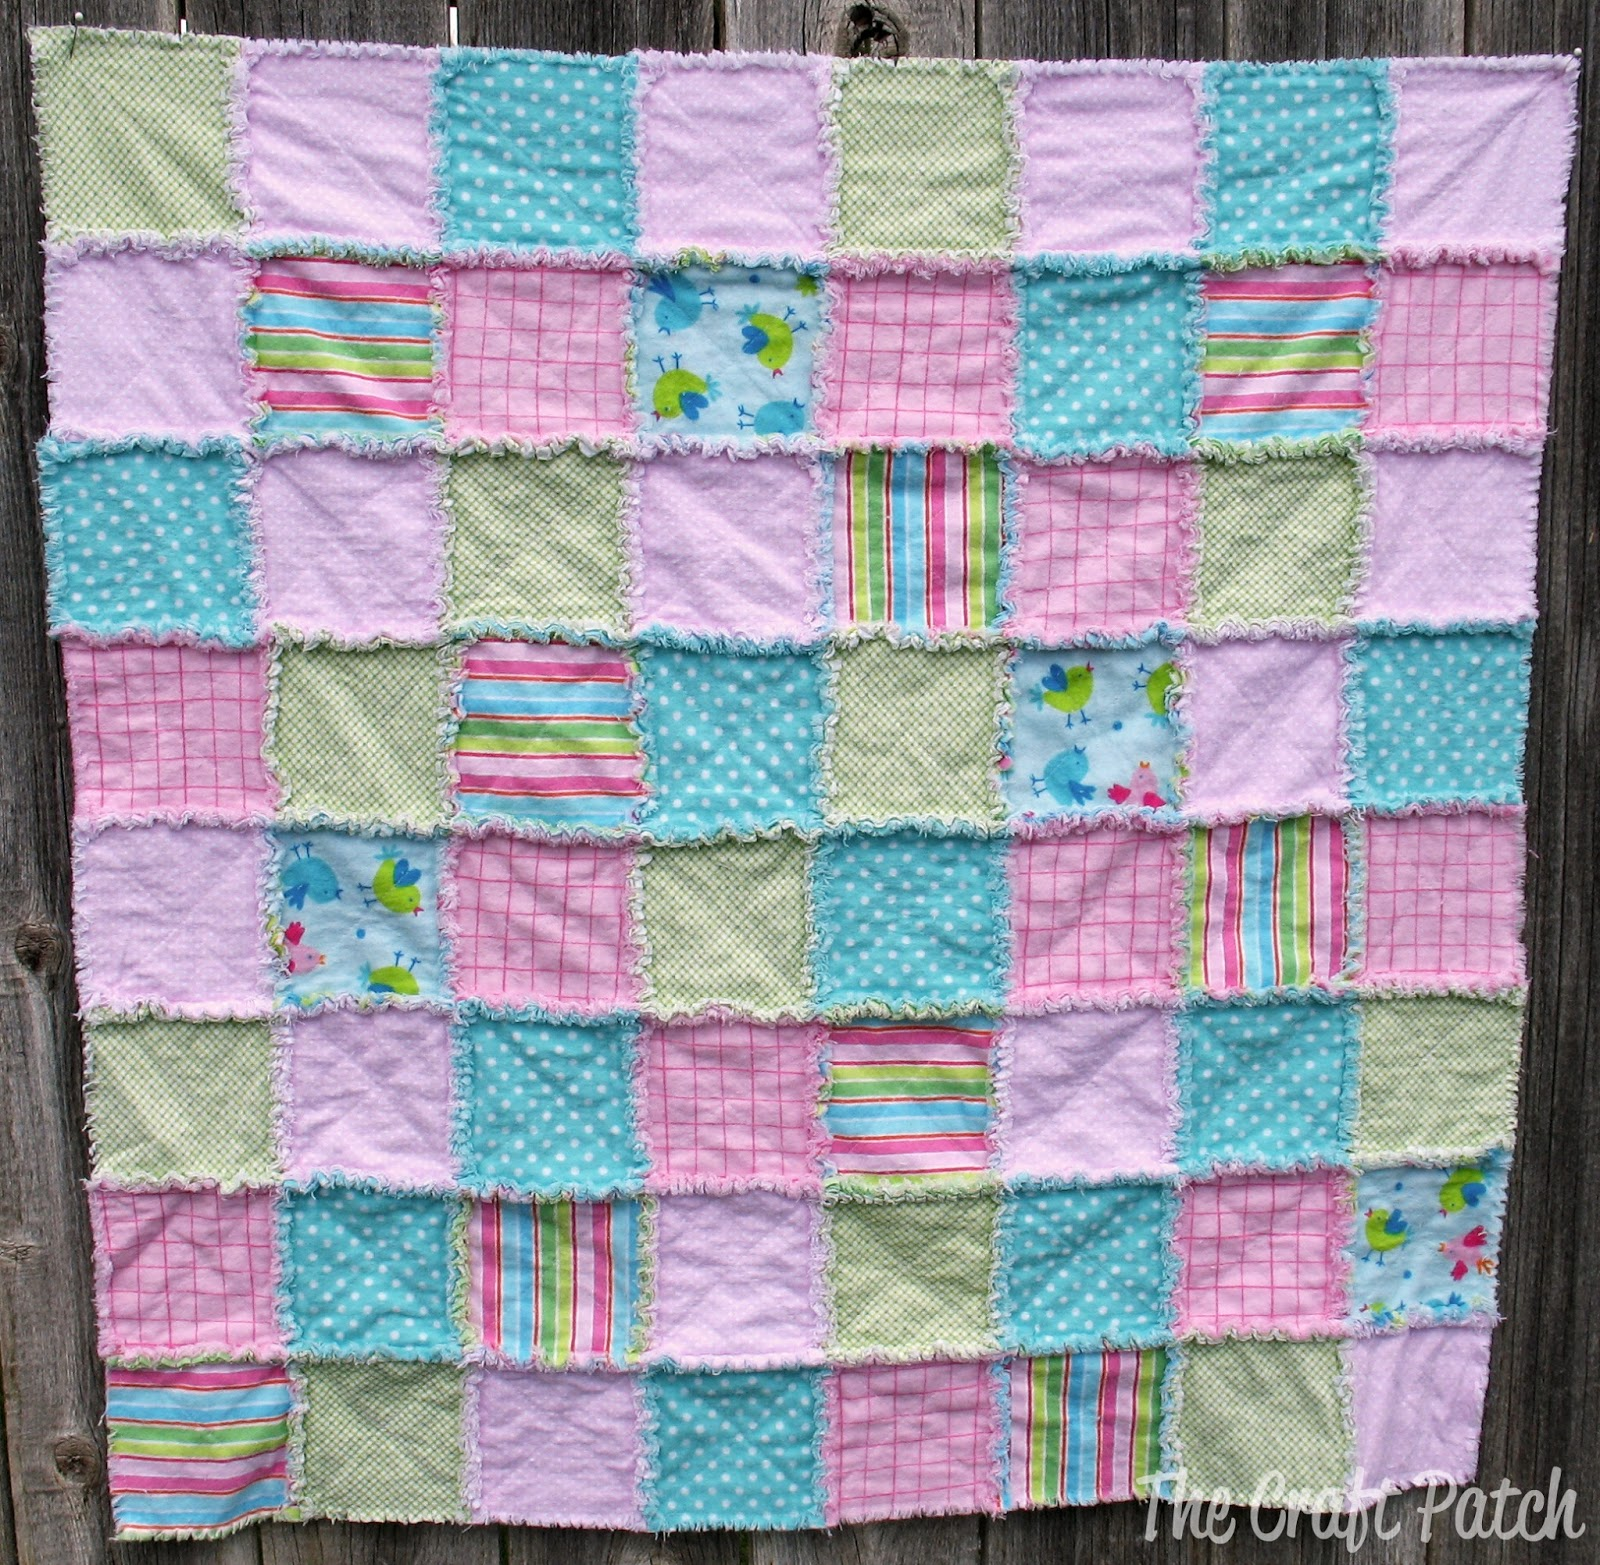 Rag Quilt Pattern For Beginners : The Craft Patch: Making A Rag Quilt (A Great Baby Gift)